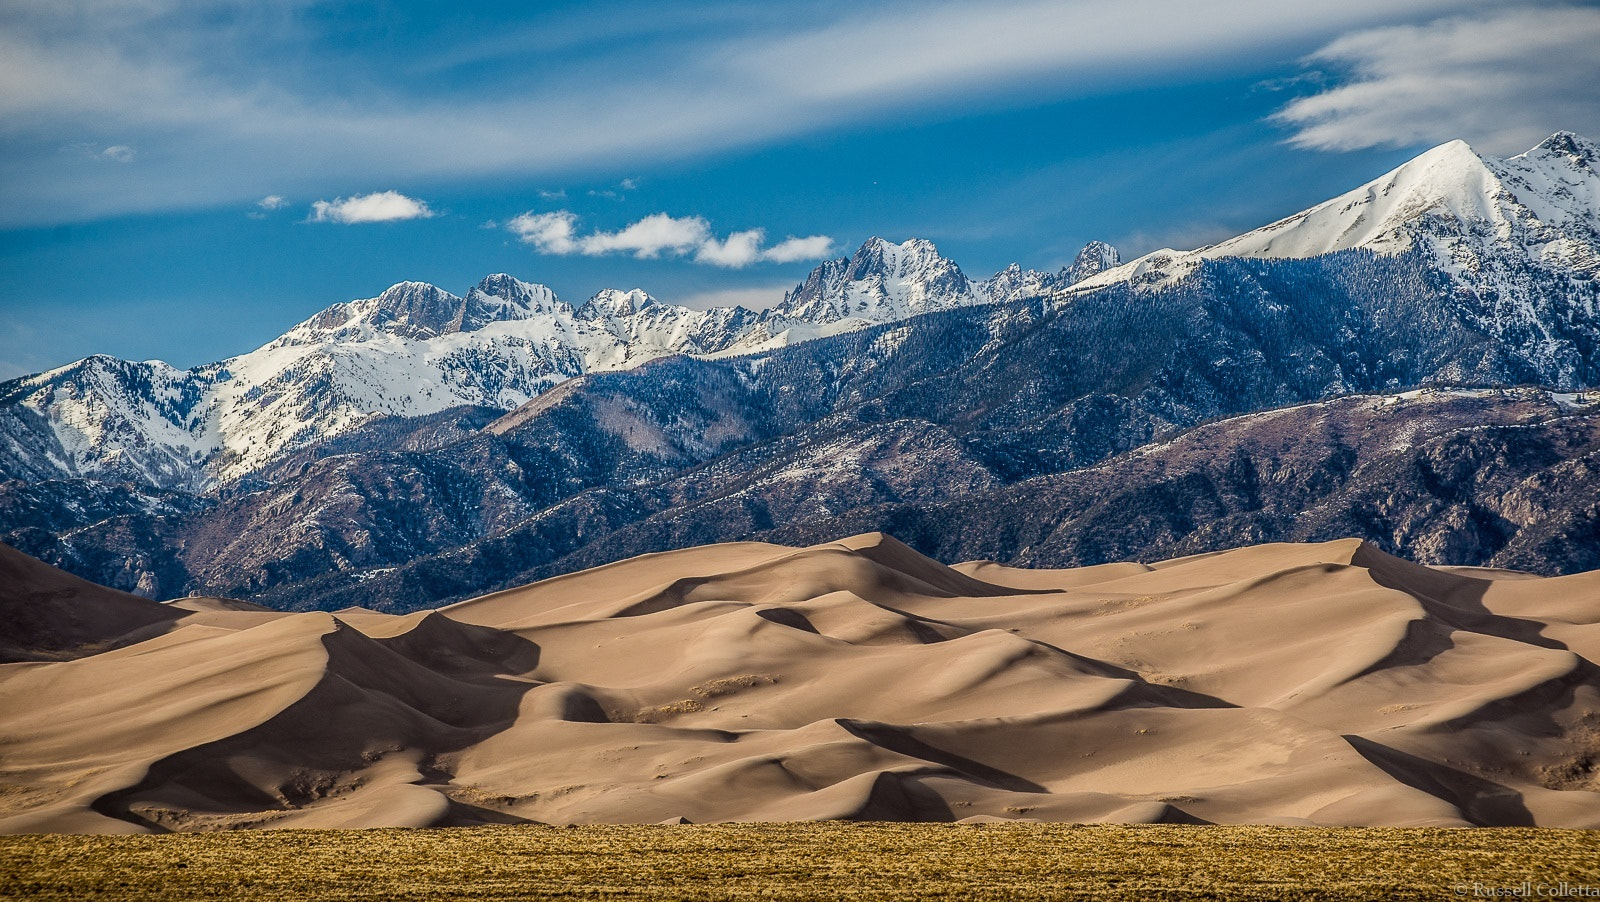 Photograph Dunes and Crestones by Russ Colletta on 500px